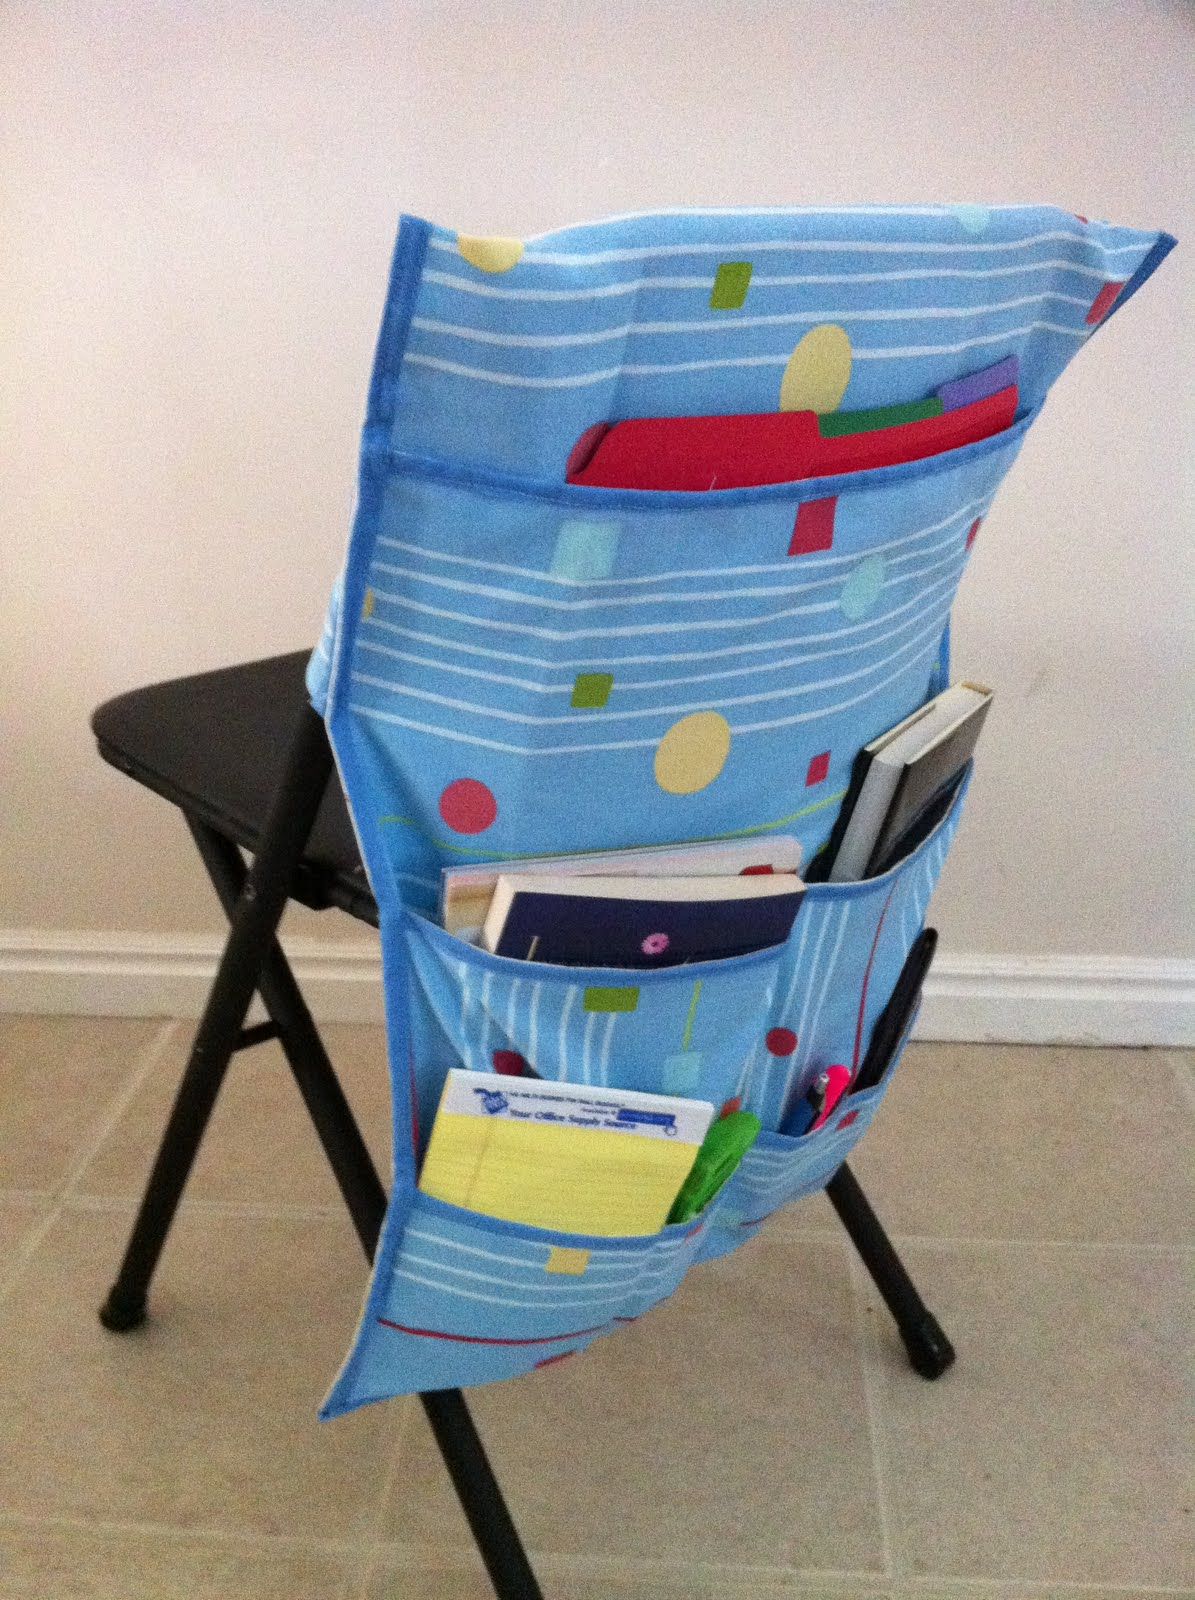 chair pocket organizer rocking chairs at walmart utah 39s crafty chick sit upon and organizers